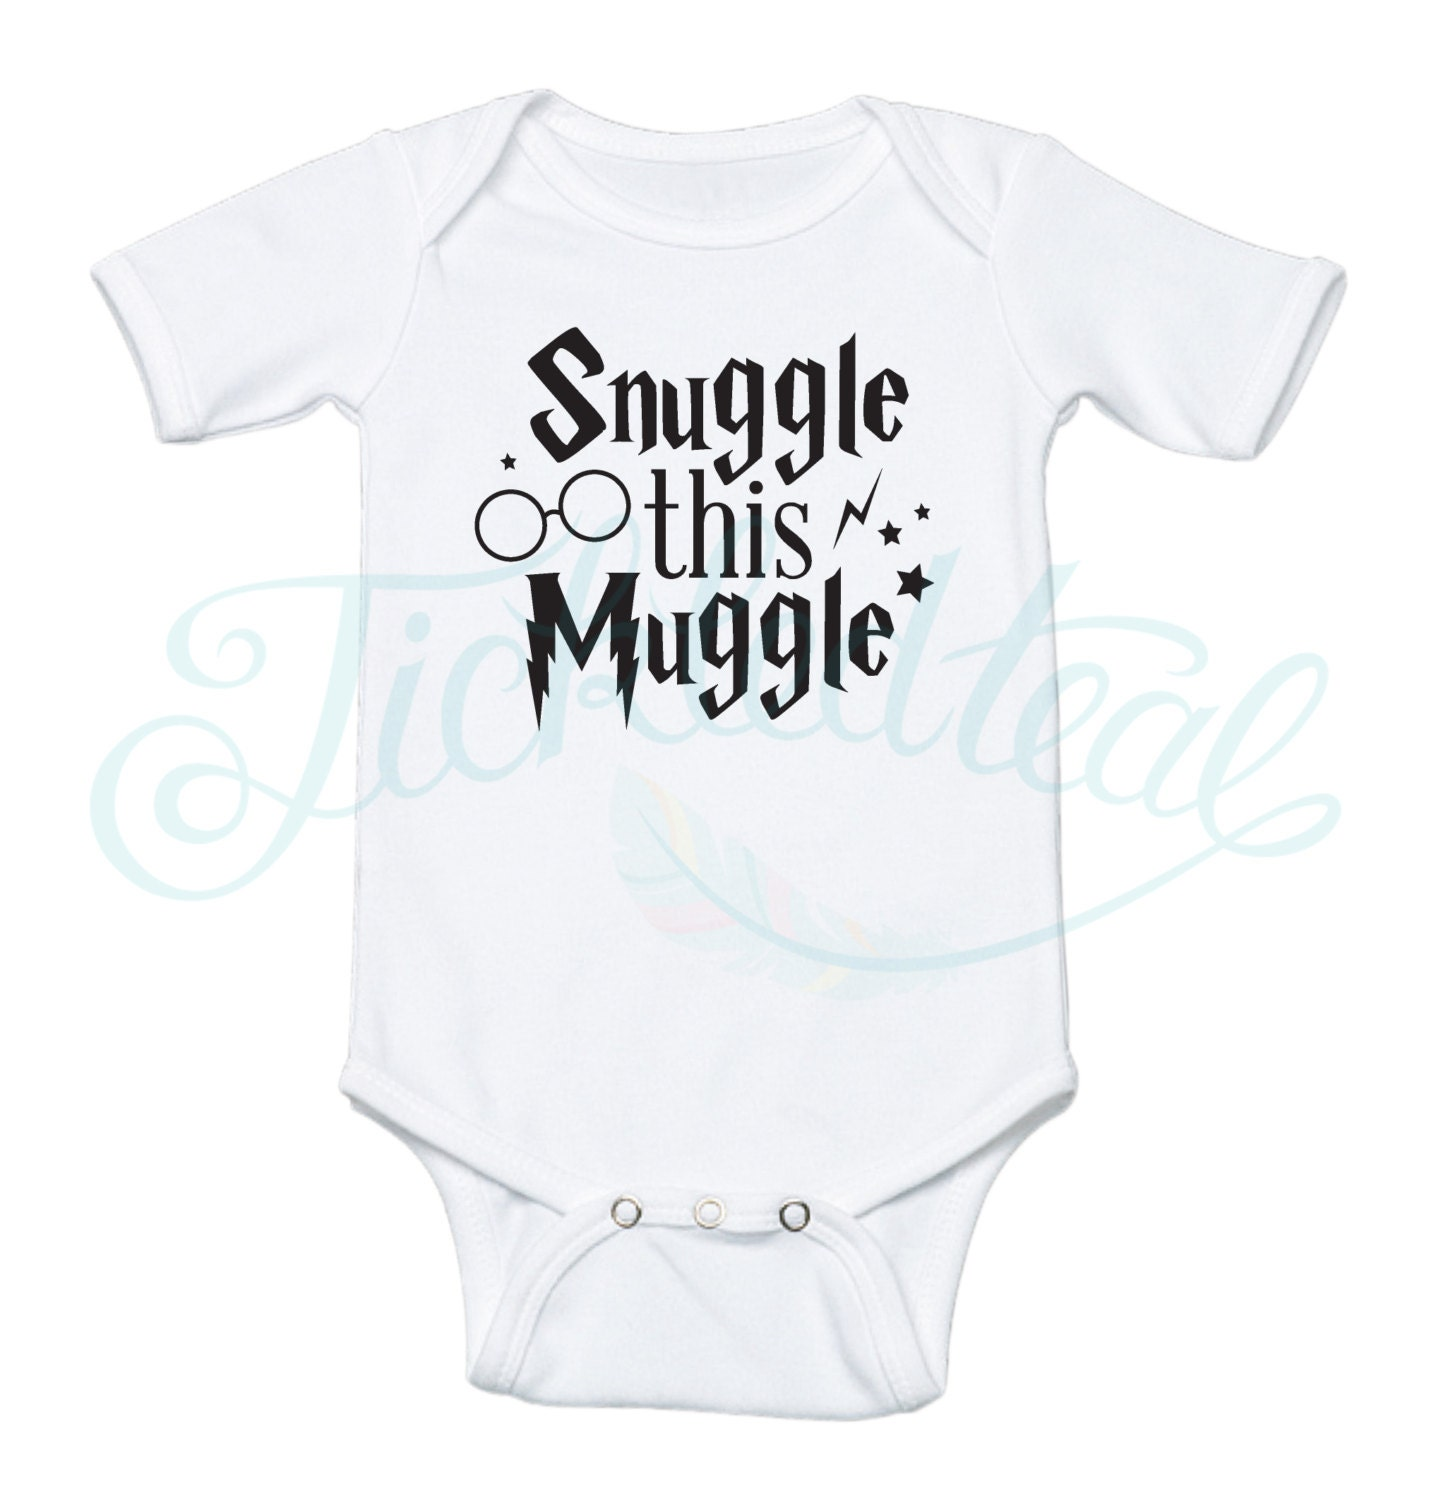 Snuggle this Muggle Baby Onesie Harry Potter inspired Baby